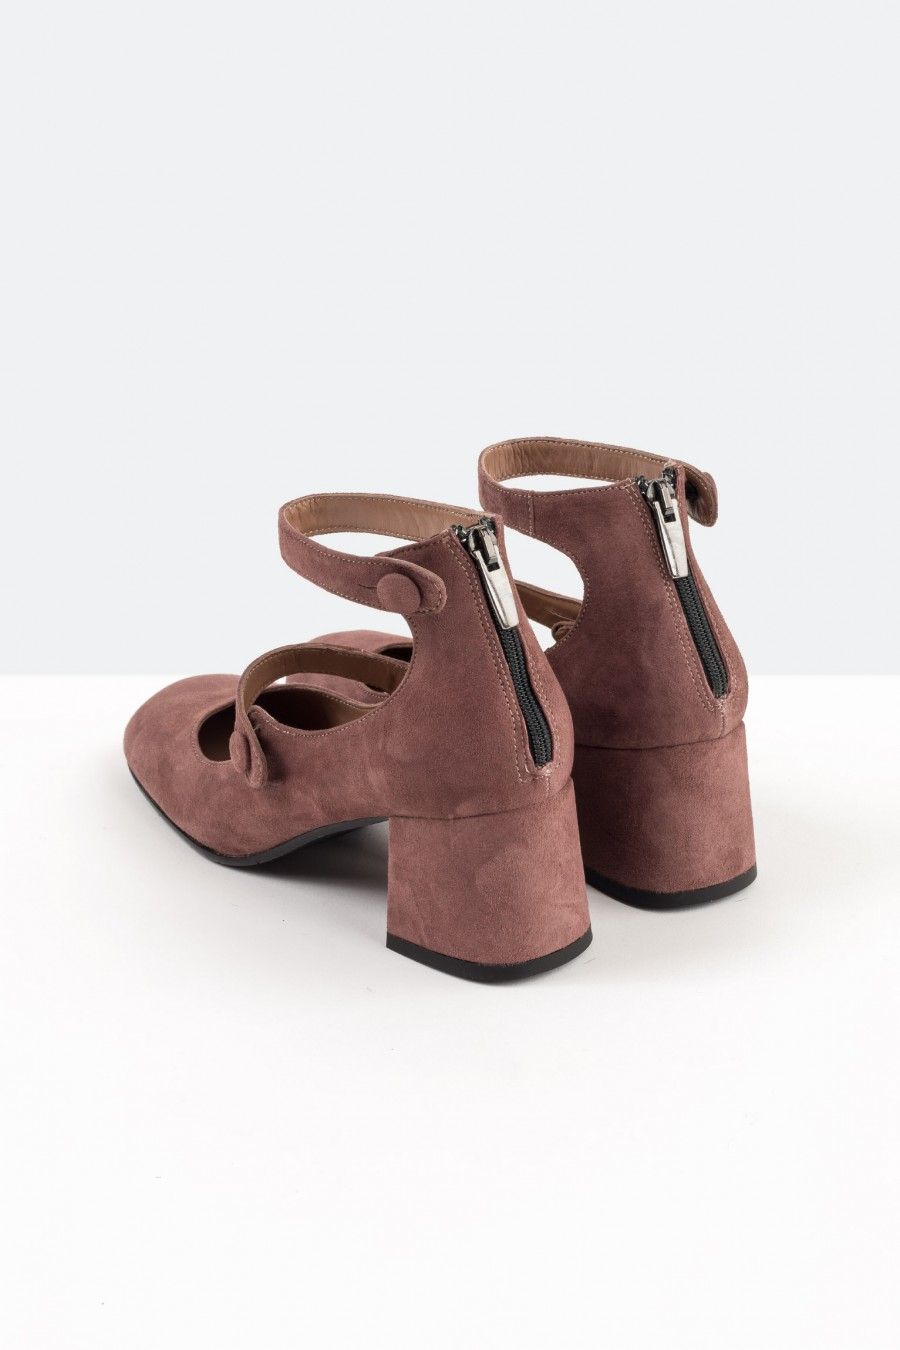 Pink suede Mary Jane shoes with ankle straps